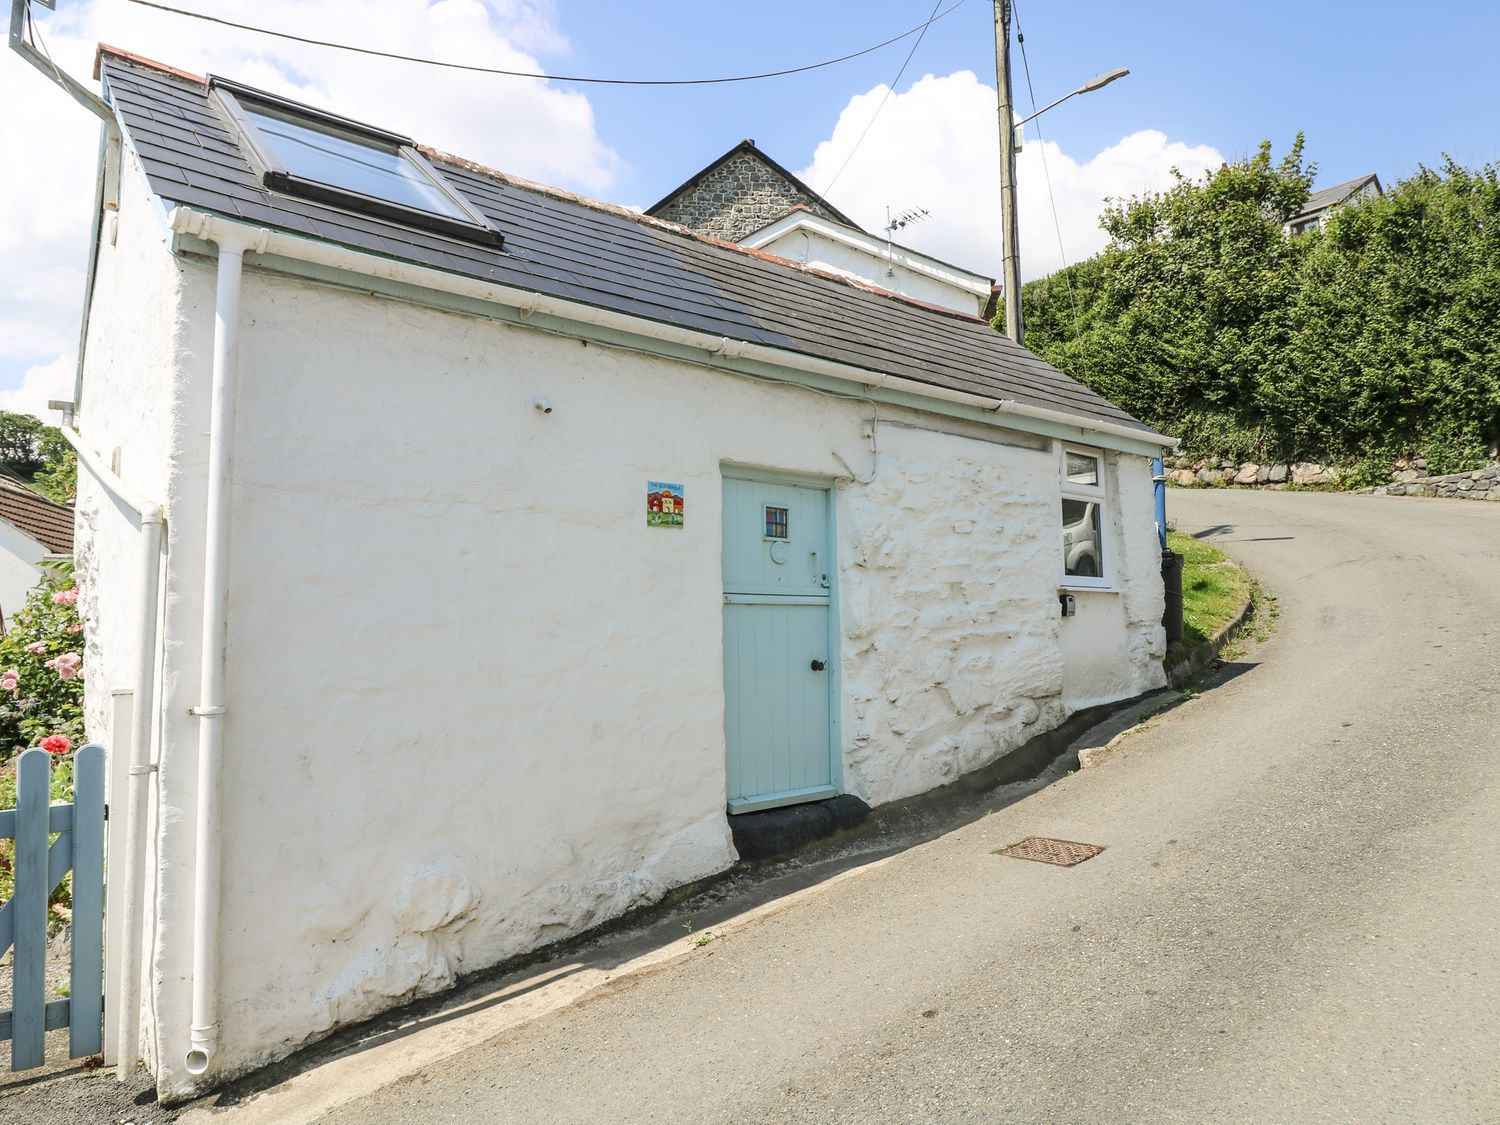 Cornwall - Porthallow near St Keverne - The Old Stable